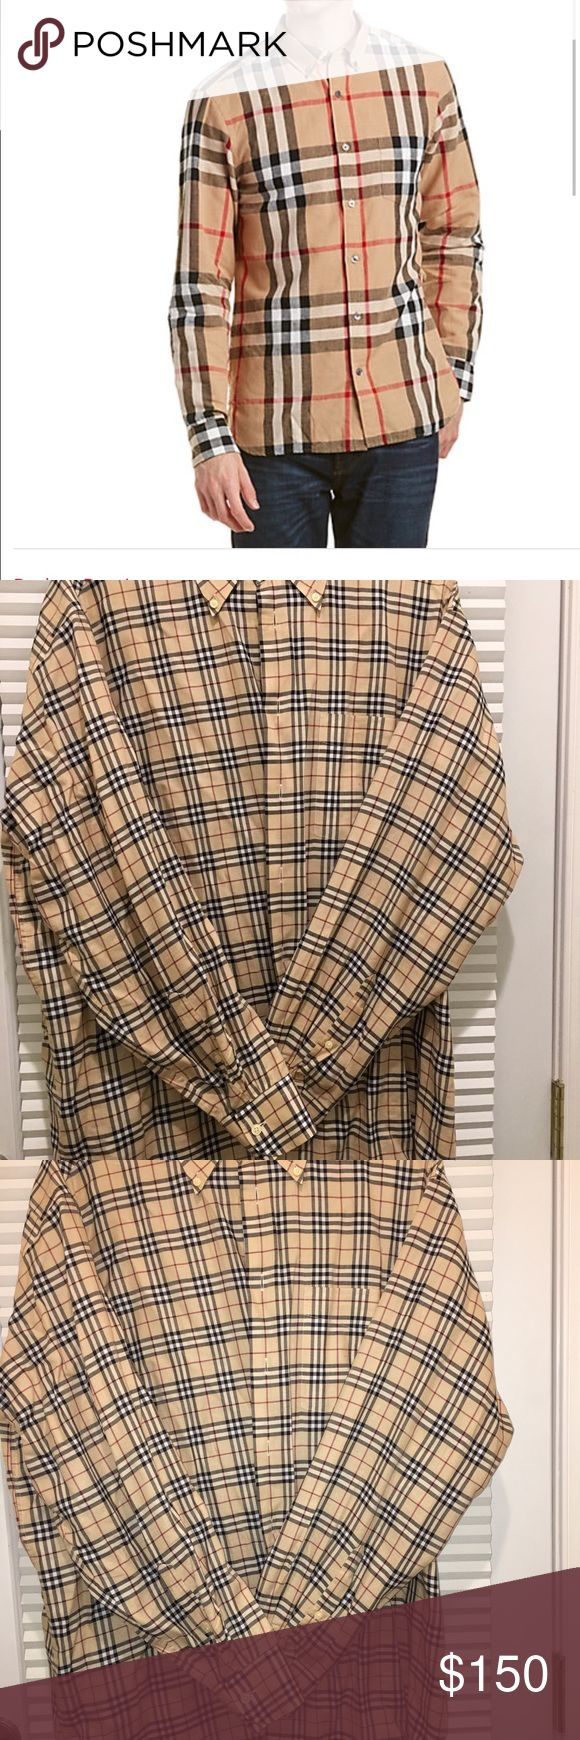 Burberry Men's Shirt Burberry Men's signature checked cotton button-down shirt. Detailed with buttons on the collar and extra buttons. Wear open with T shirt underneath it or traditionally. Perfect condition. Worn 3x. Only selling because now too small. Burberry Shirts Casual Button Down Shirts